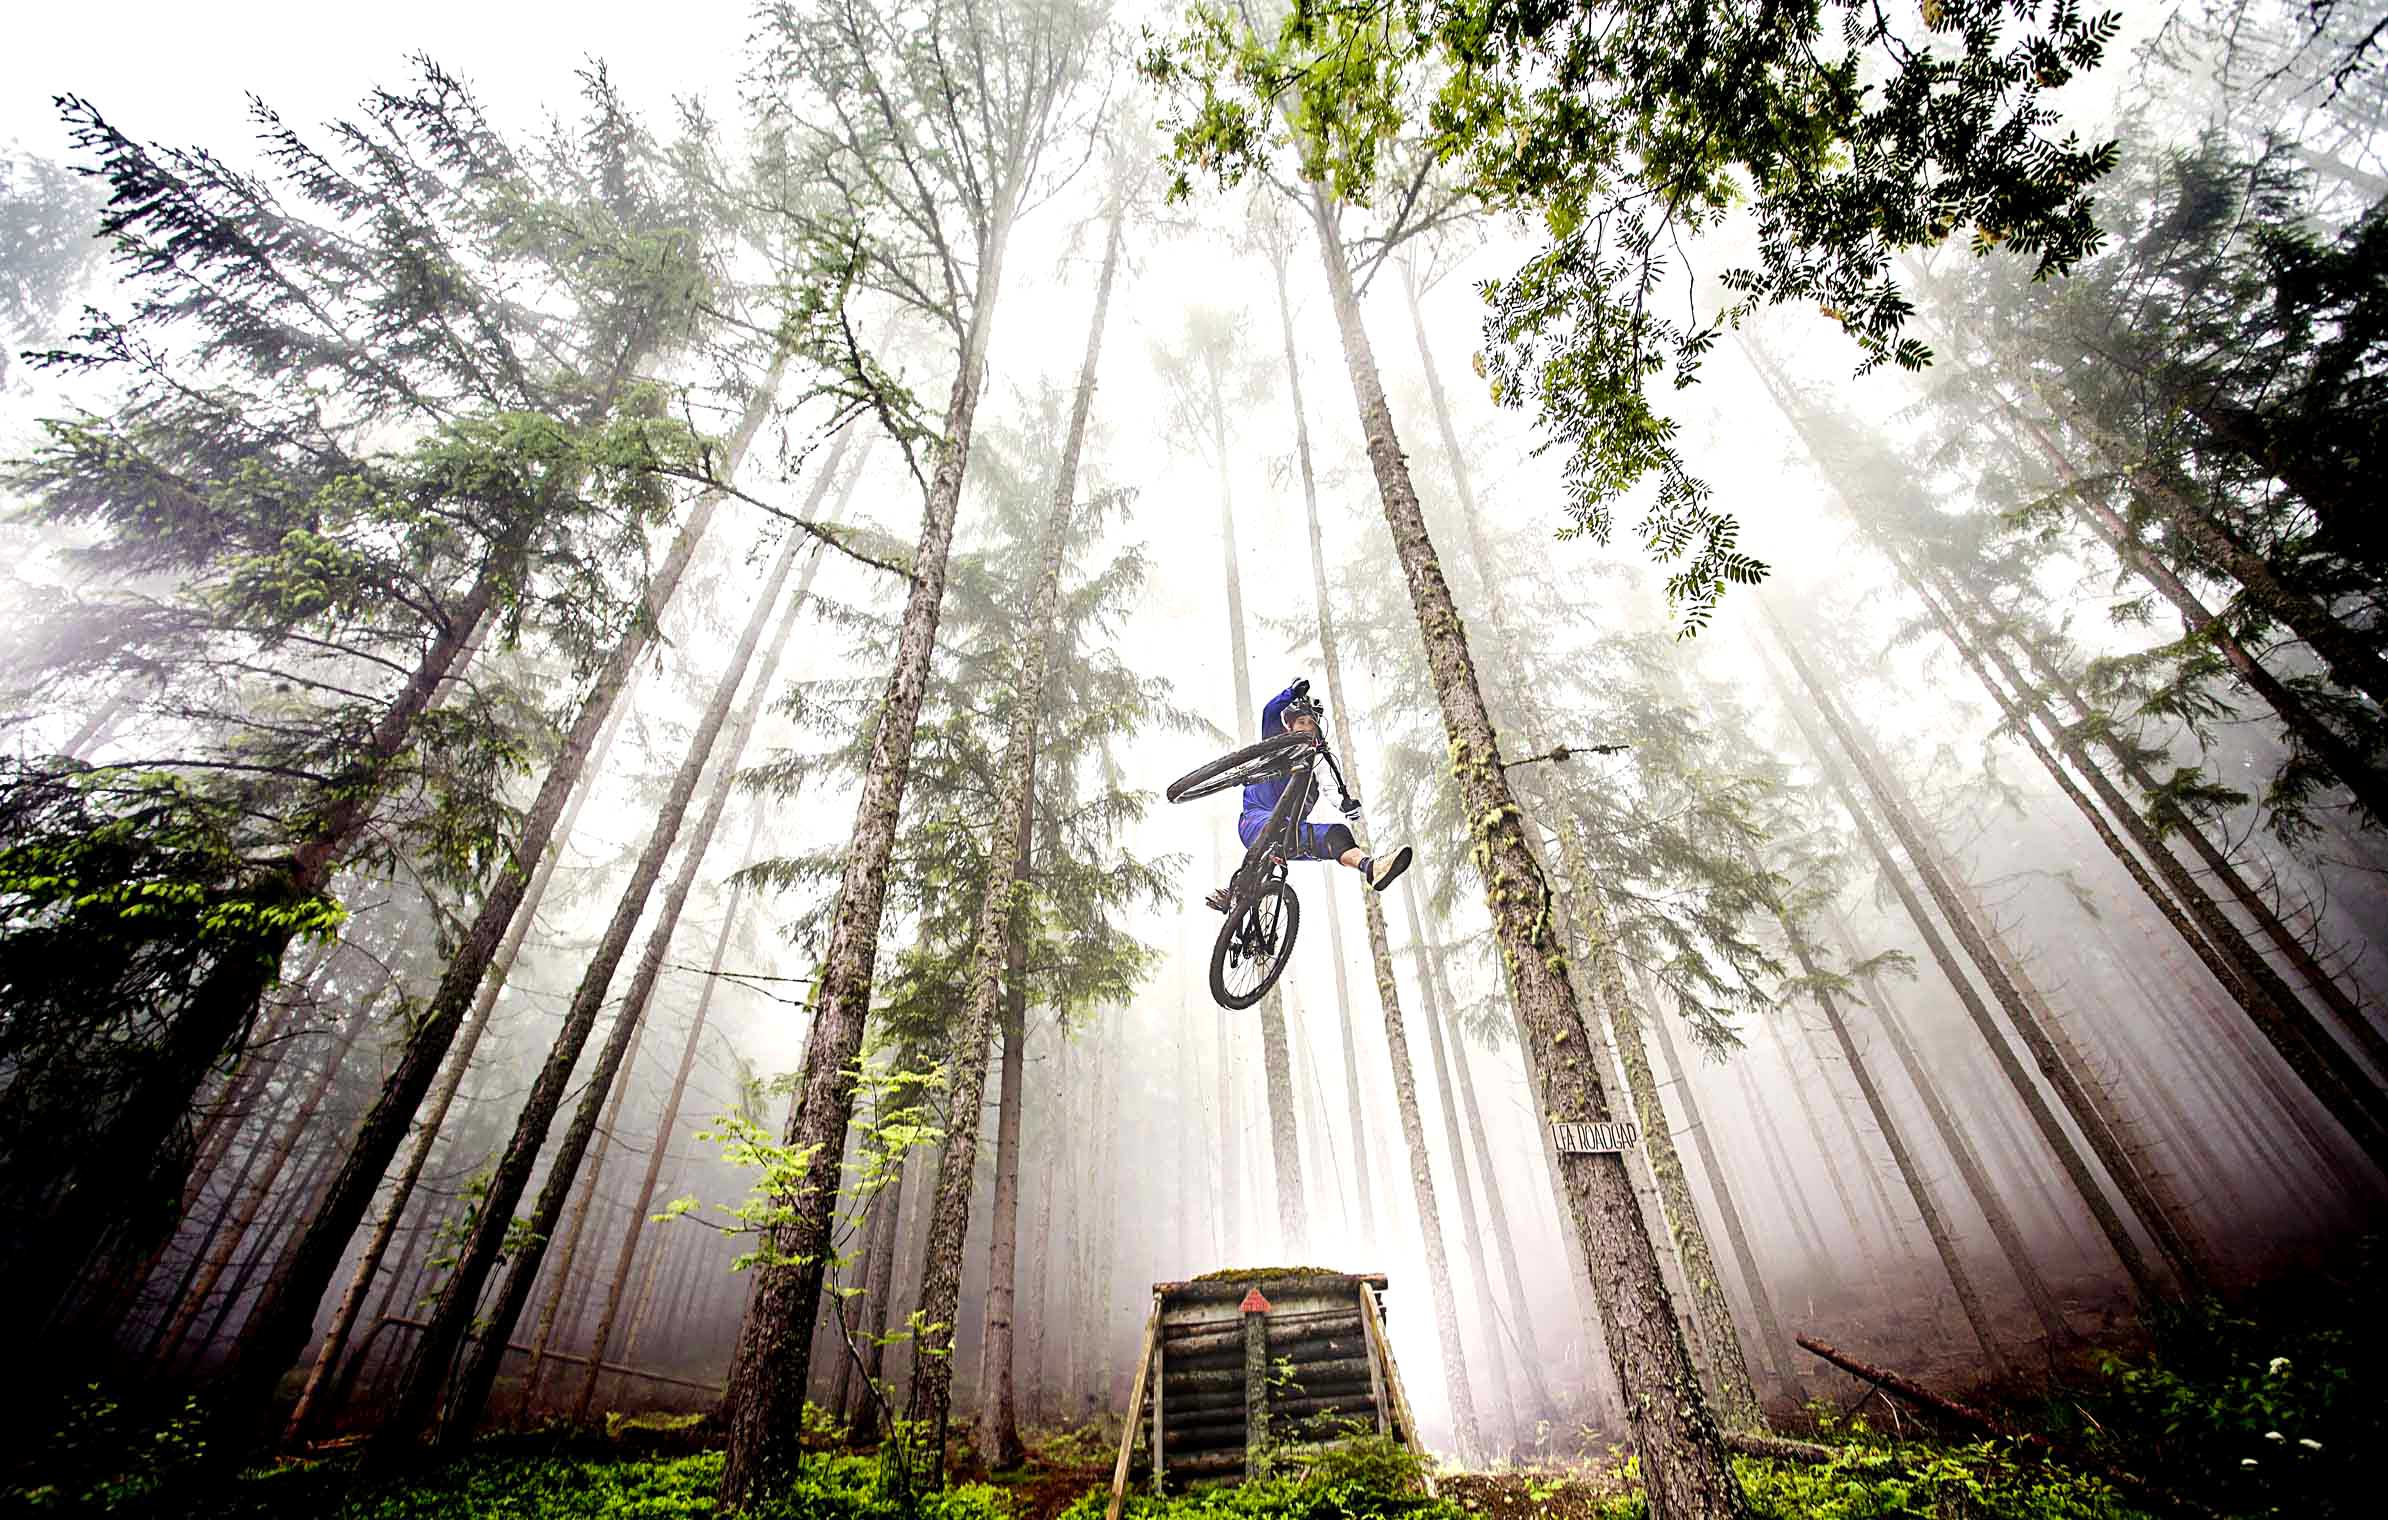 gruber_mani_trees_one_footer_jump_morning_foggy